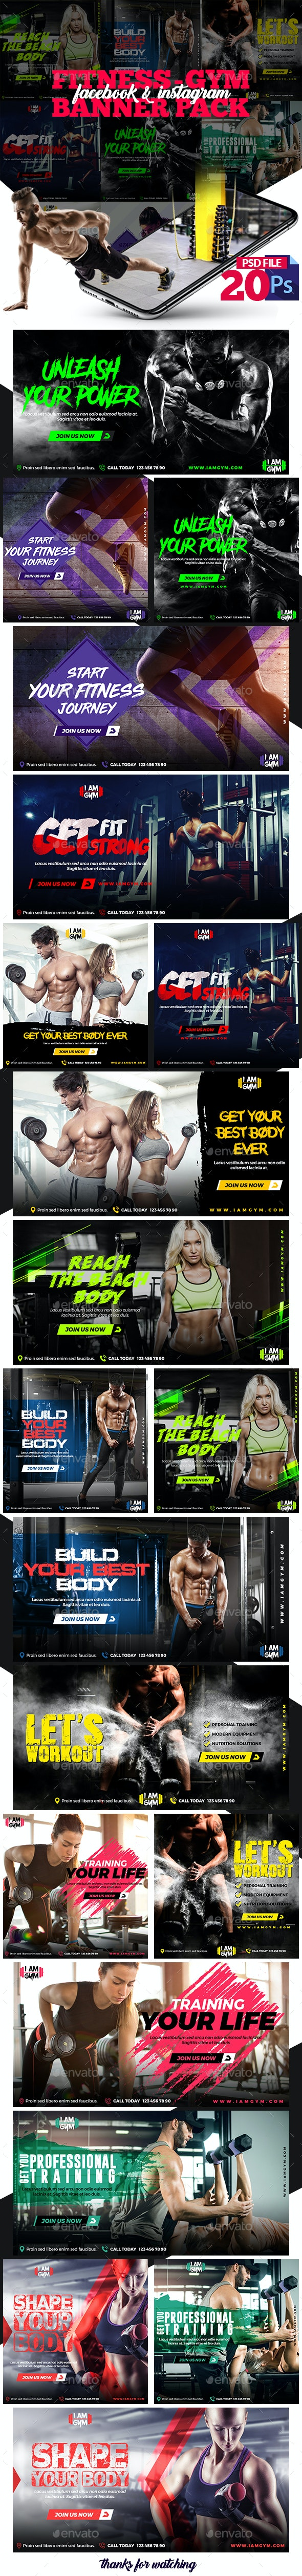 Fitness-GYM Banner Pack - Banners & Ads Web Elements